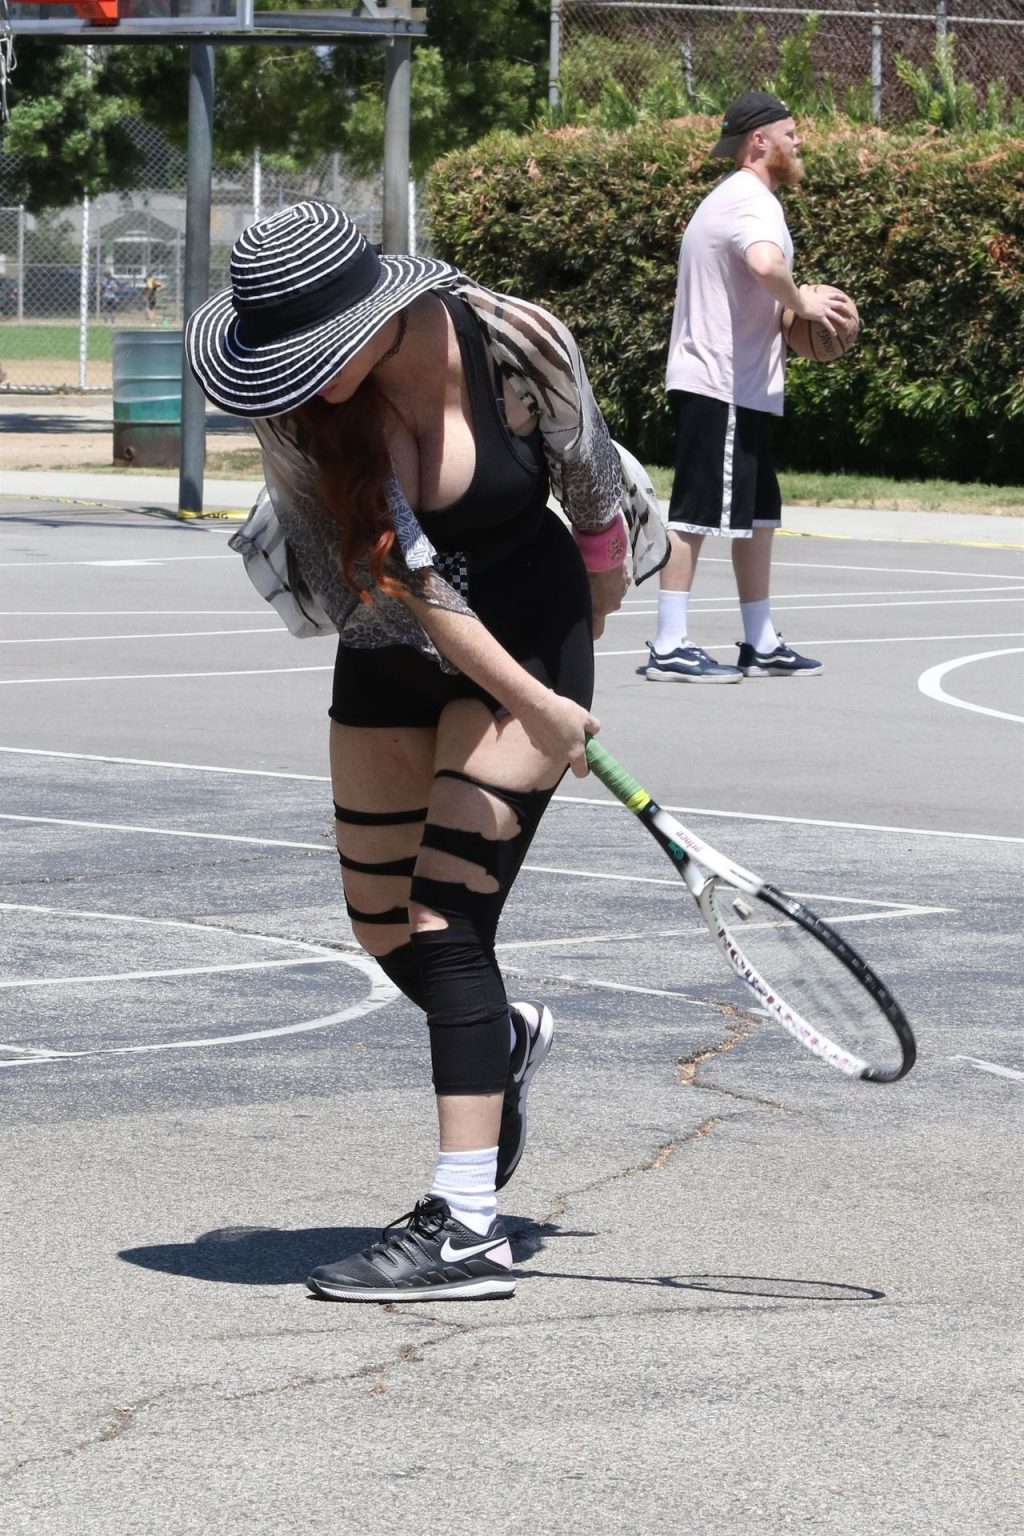 Phoebe Price Attends Tennis Practice in Ripped Up Leggings at the Park (45 Photos)